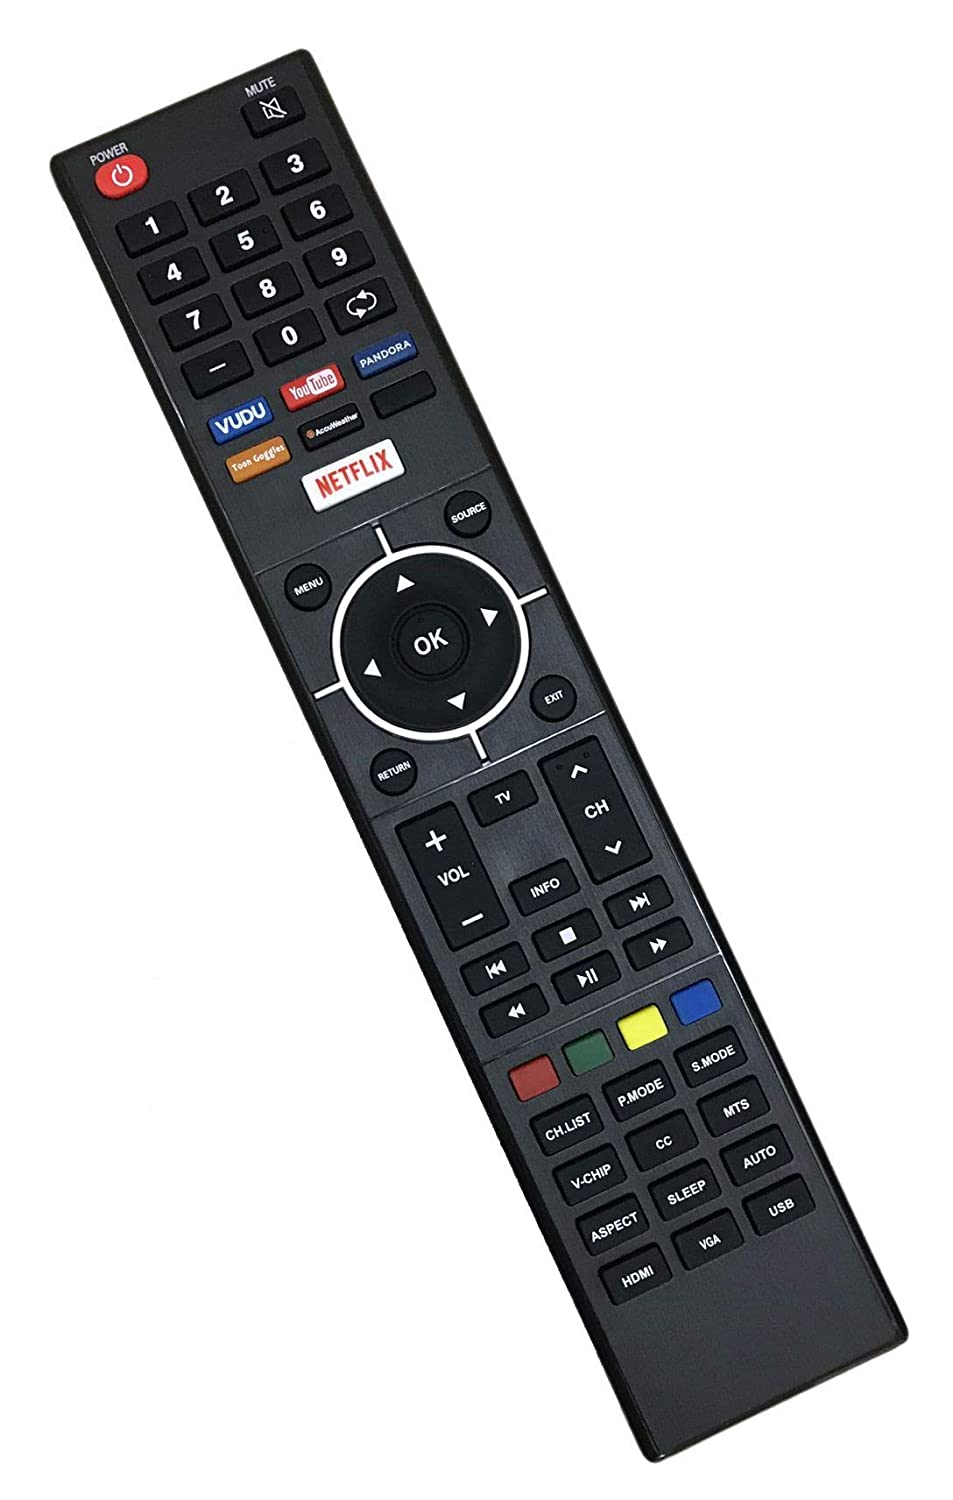 New Remote Control Replacement with VUDU Netflix for ELST4316S E2SW5018  ELSW3917BF ELST5016S E2SW5018 E4SFT5017 E4STA5017 ELSJ5017 Element LED TV